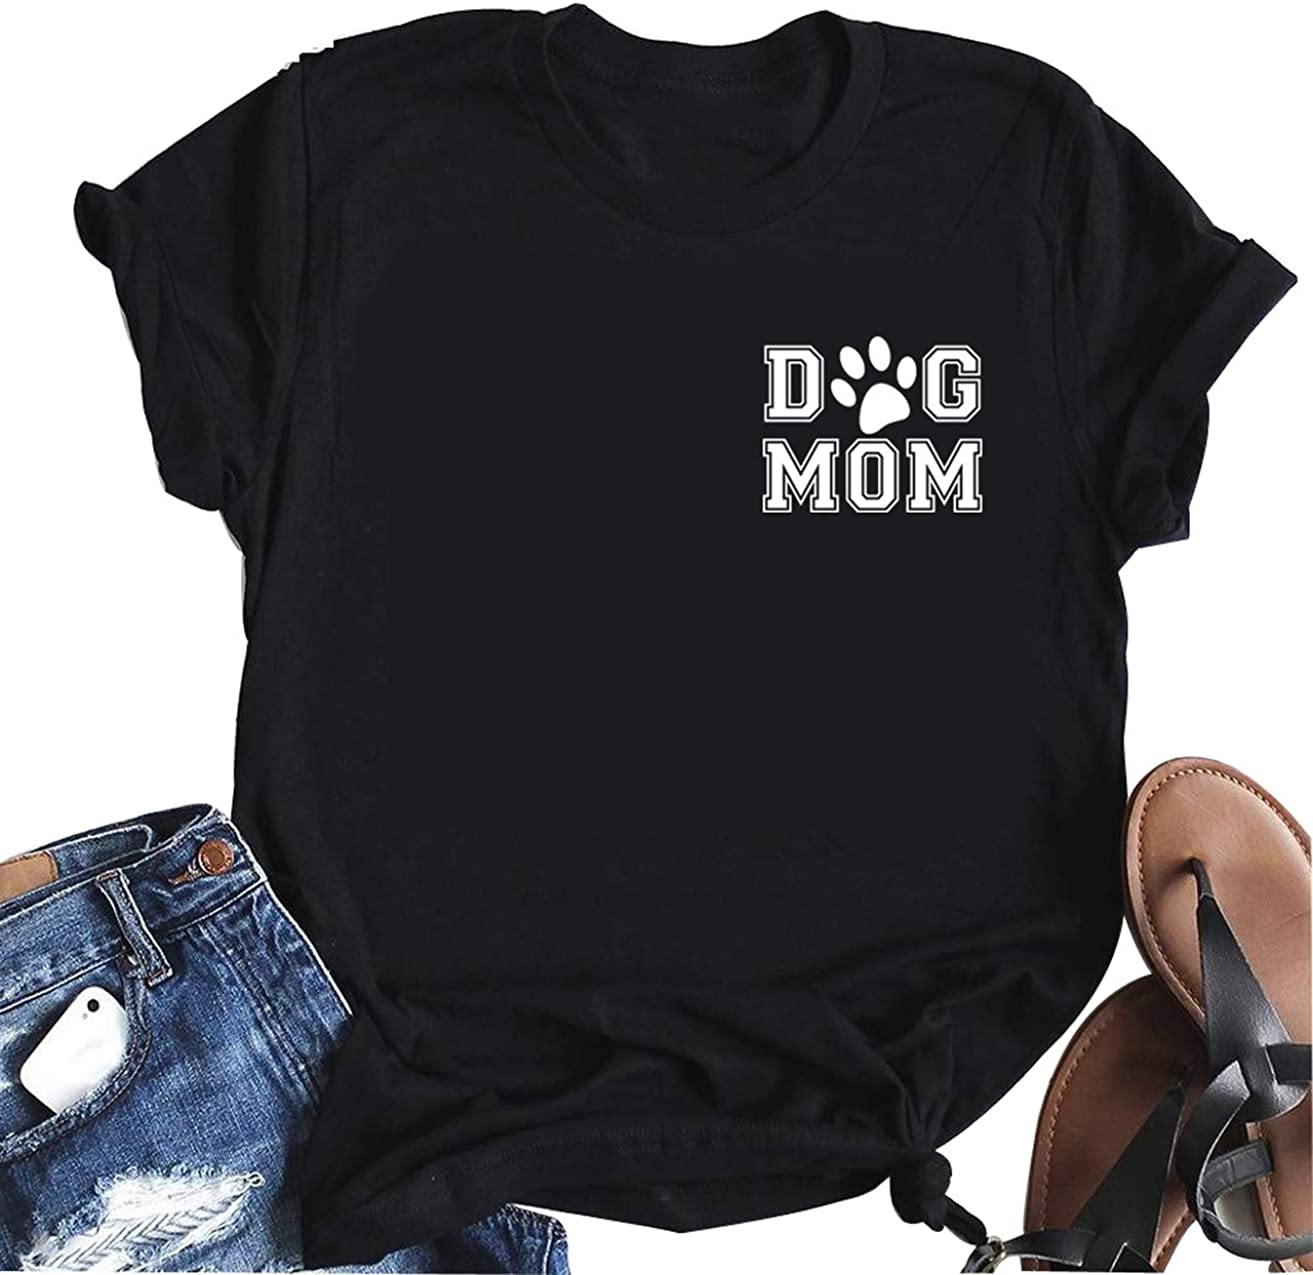 Women Dog Mom Shirts Cute Paw Short Sleeve Funny Pet Lover Party Gifts Tops Casual